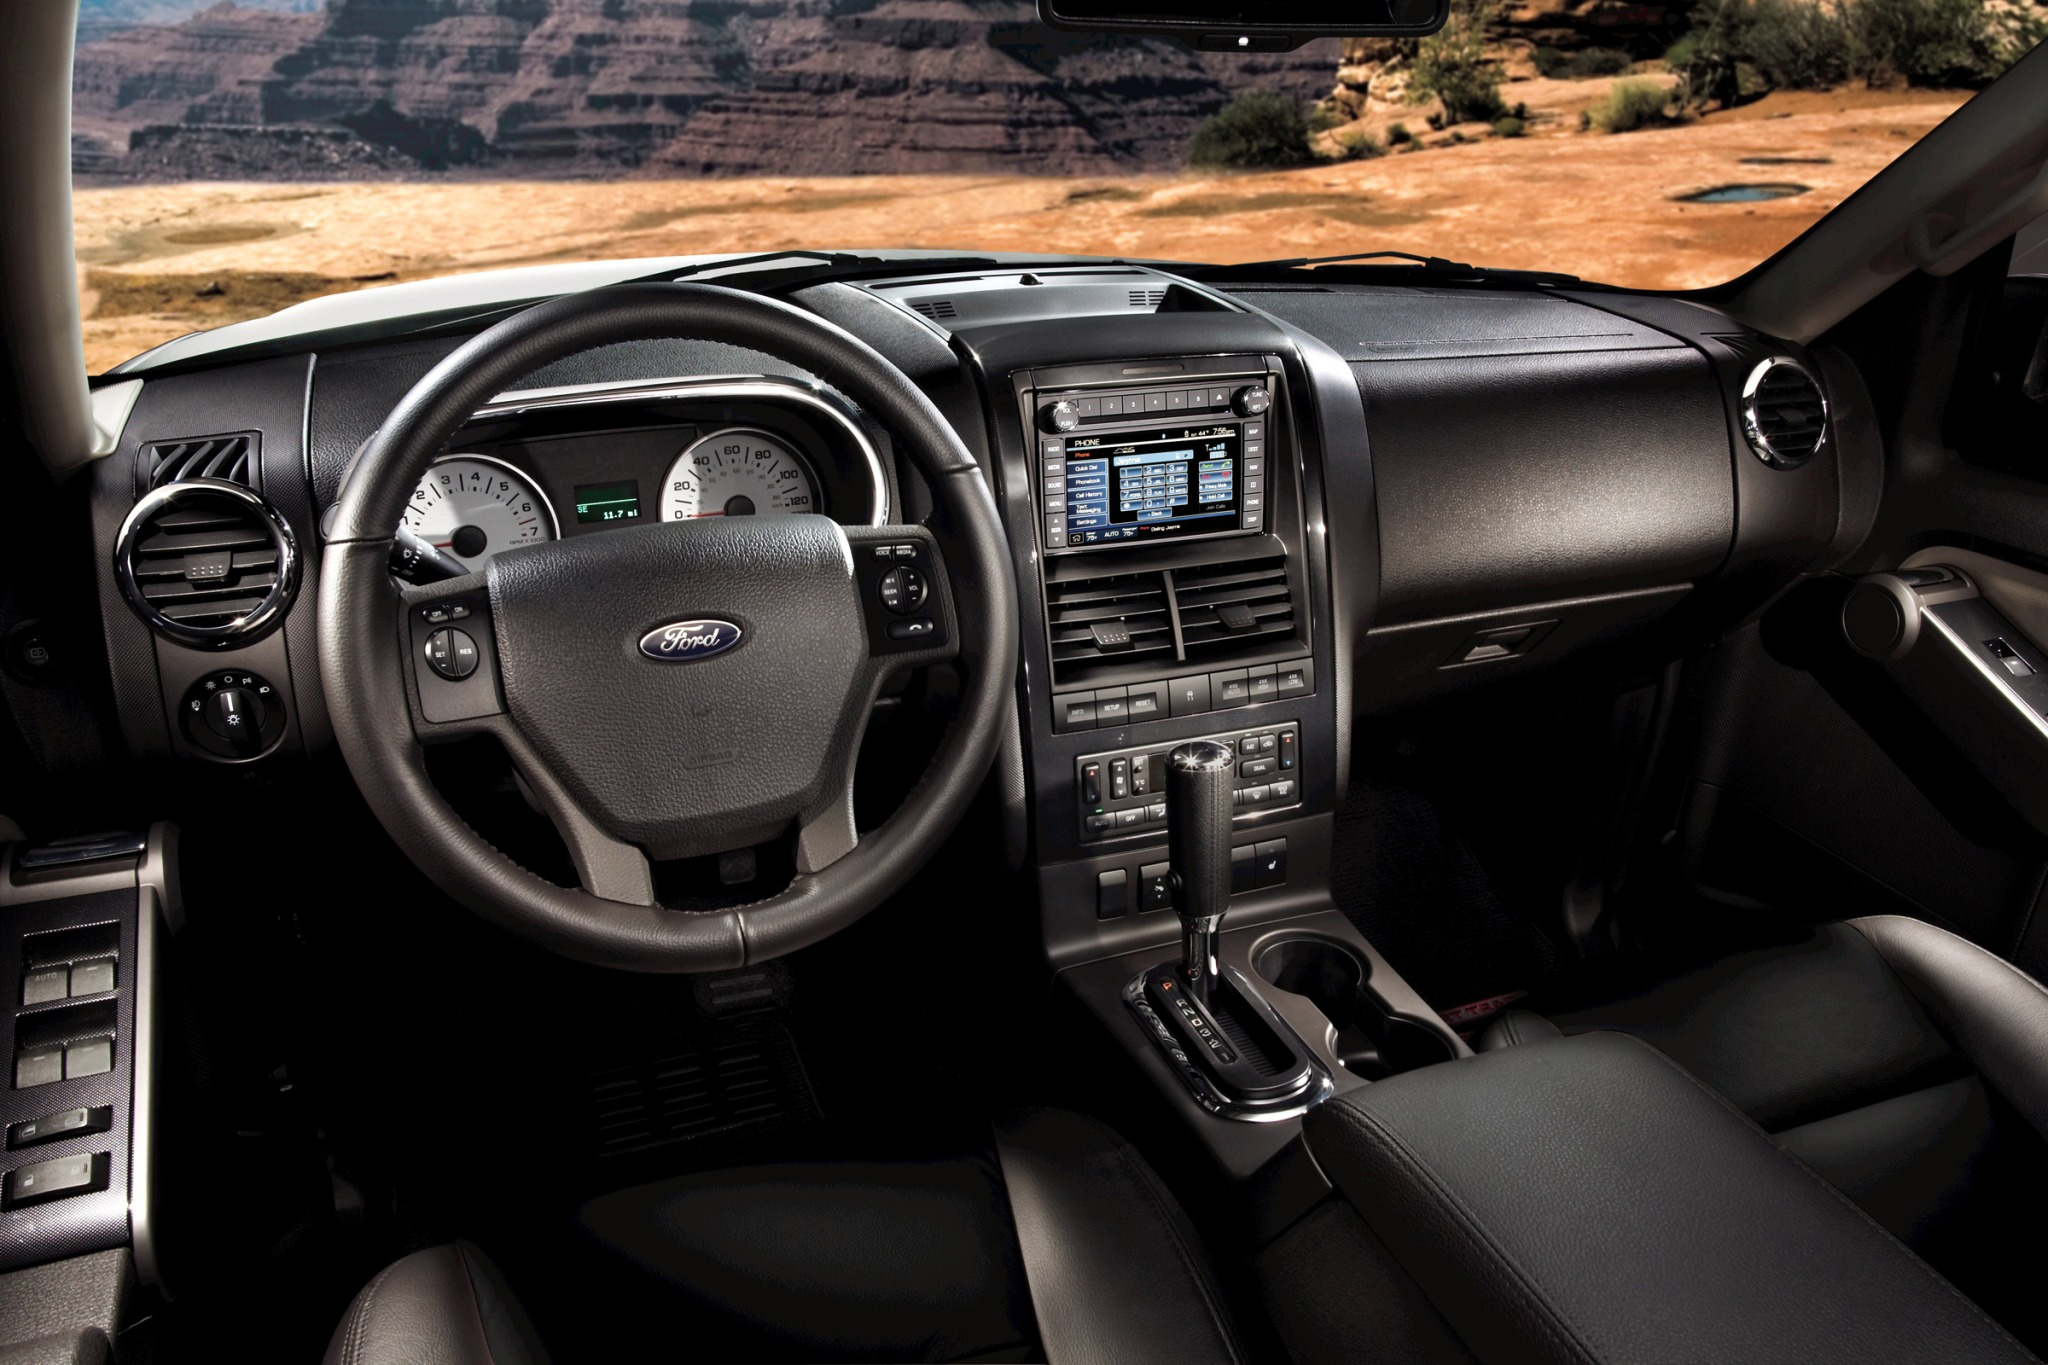 2010 Ford Explorer Sport Trac  Information and photos  ZombieDrive